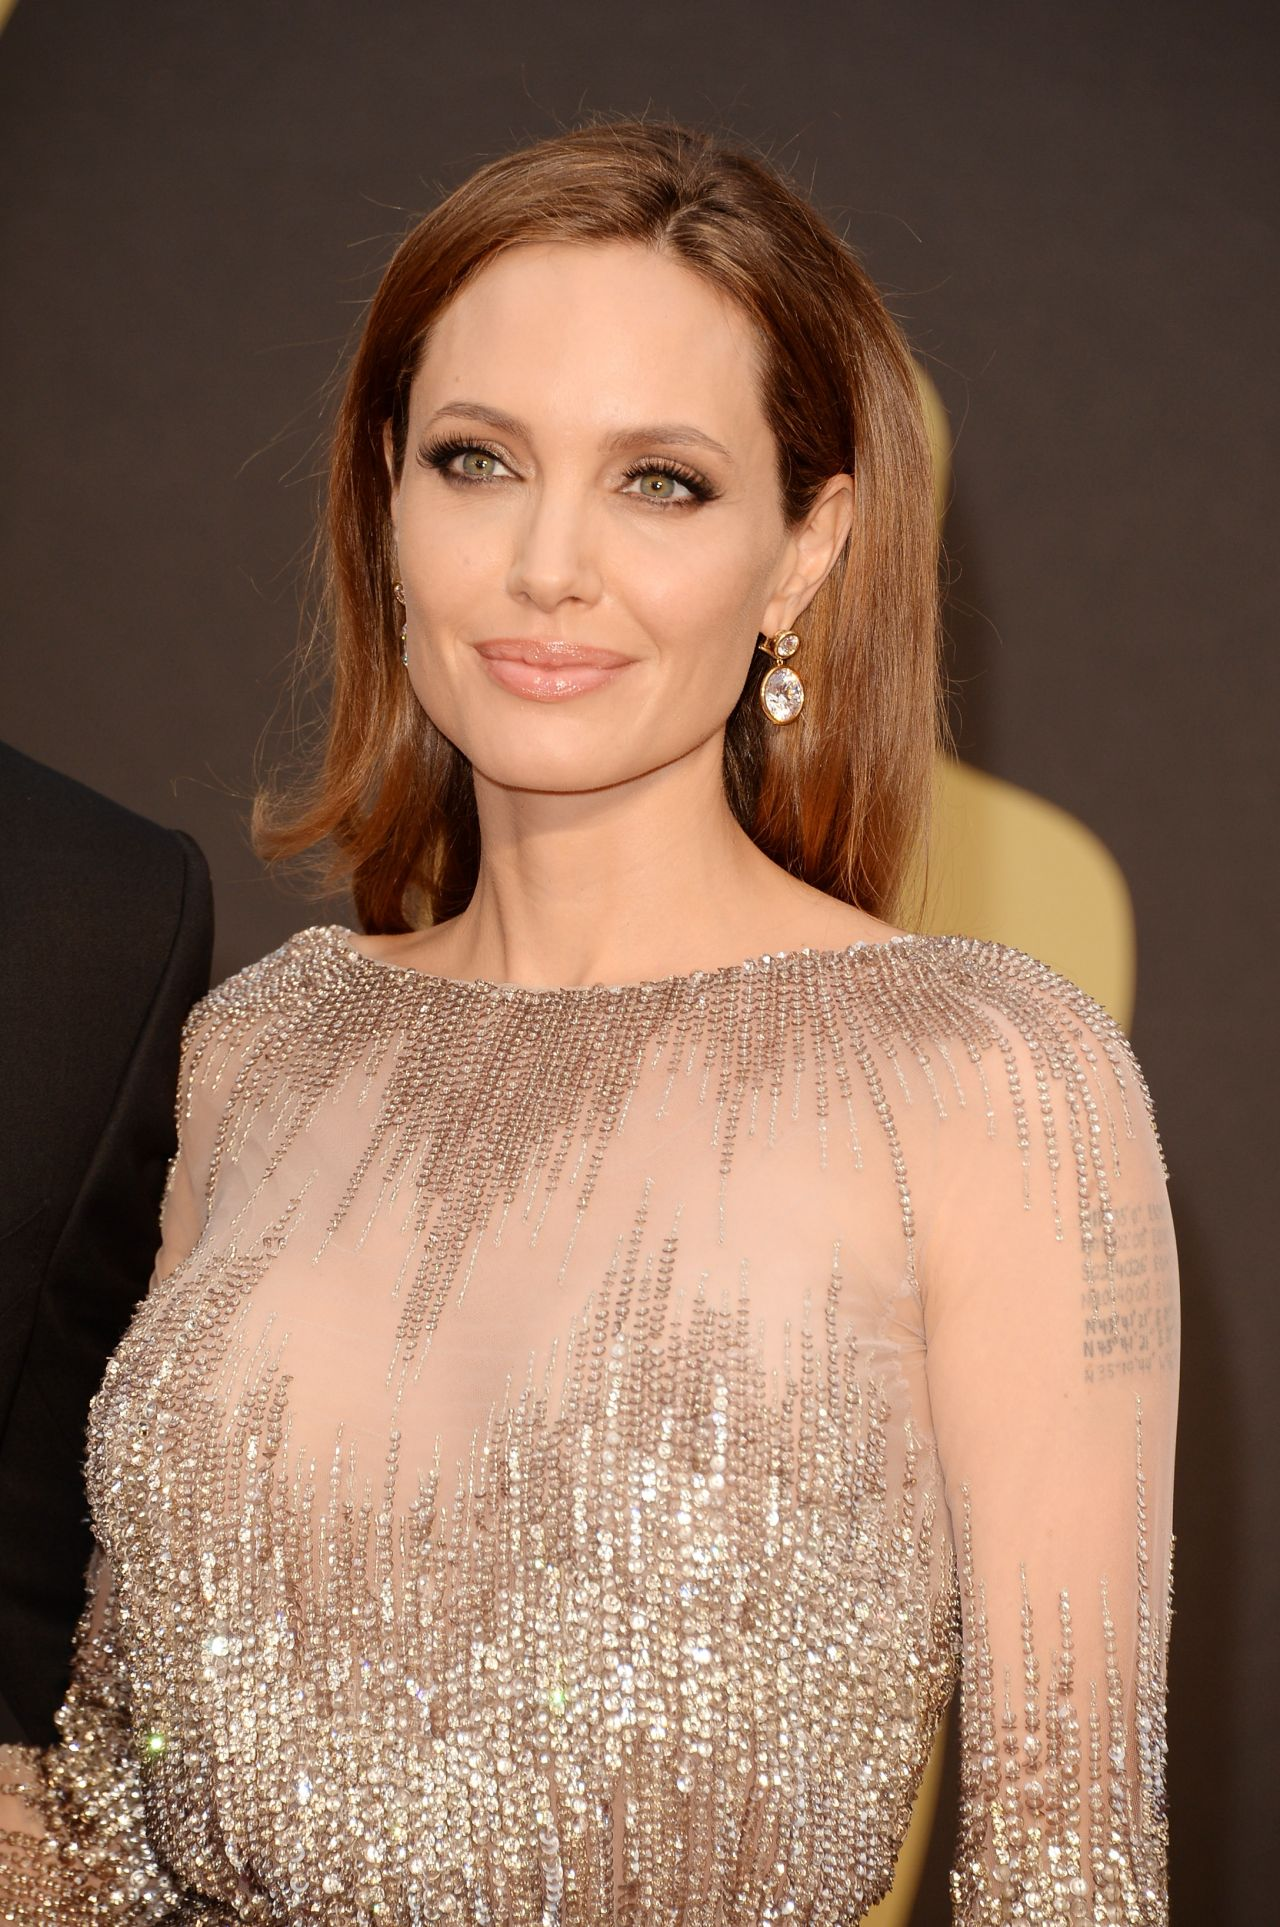 Angelina Jolie in Elie Saab Couture With Diamond Earrings by Robert Procop - 2014 Oscars